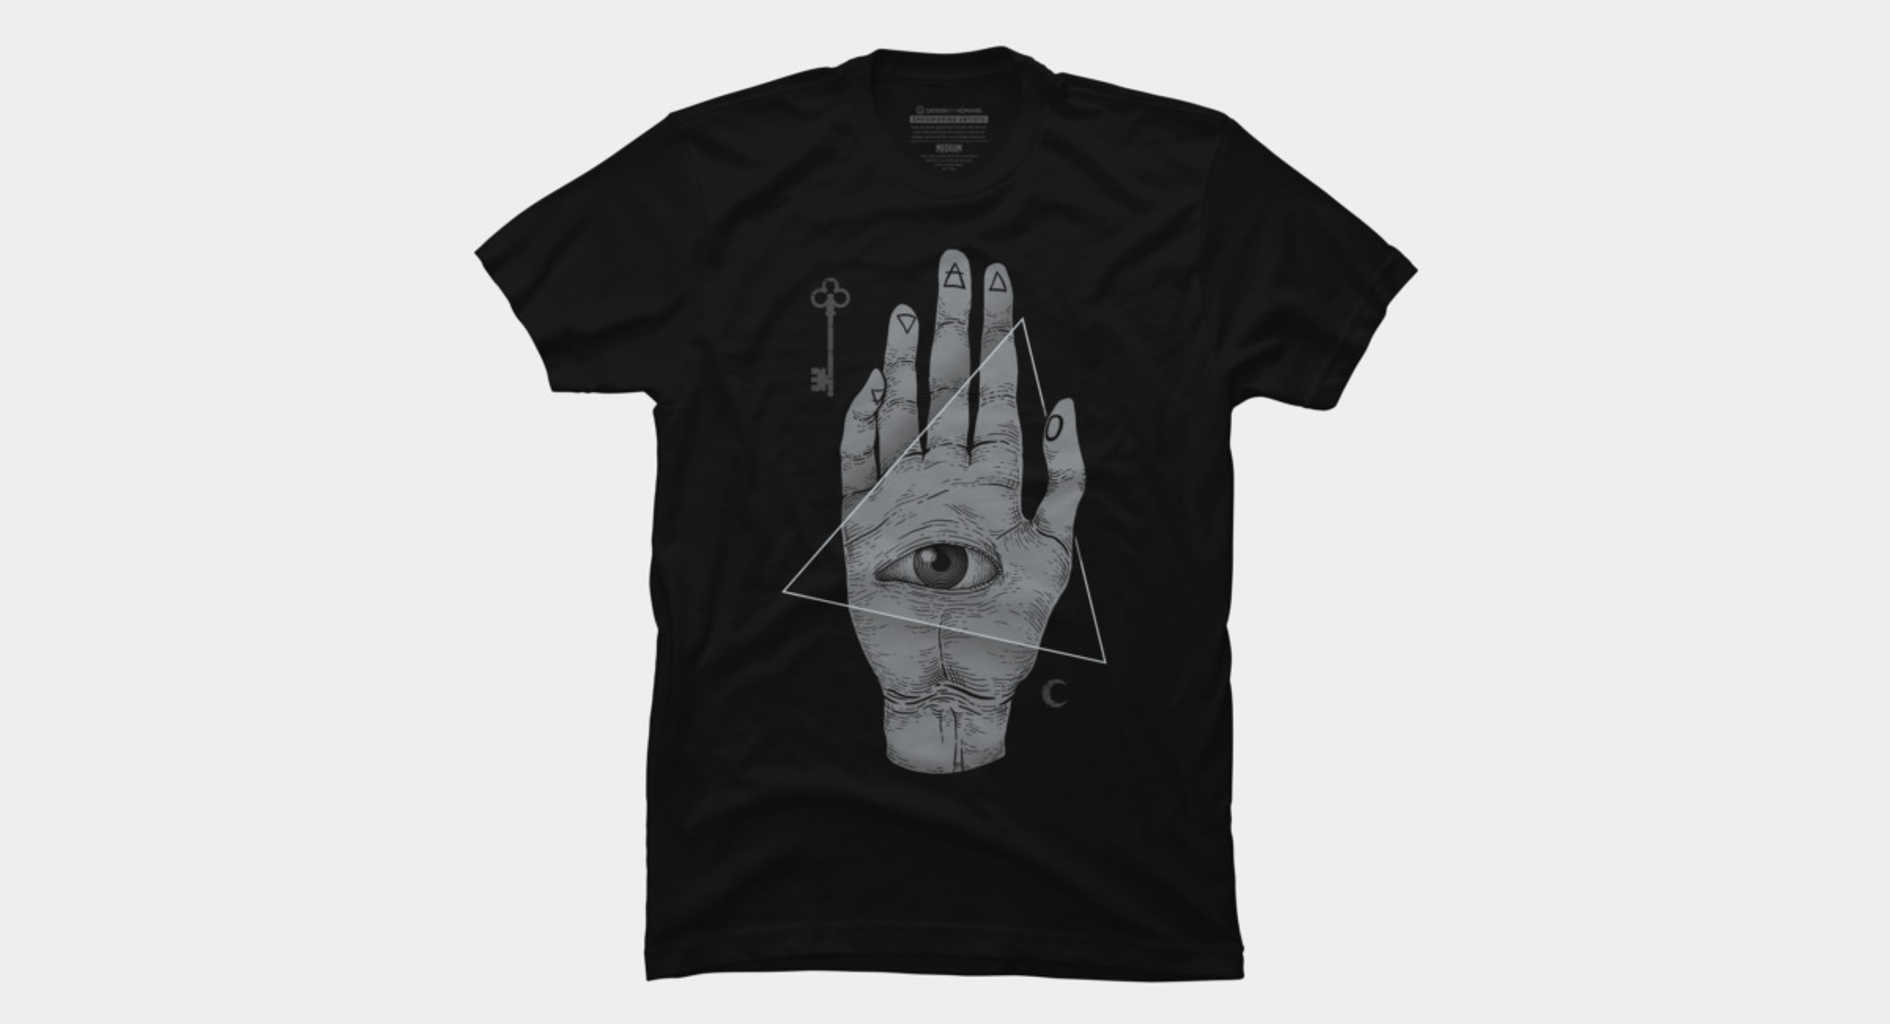 Design by Humans: Witch Hand